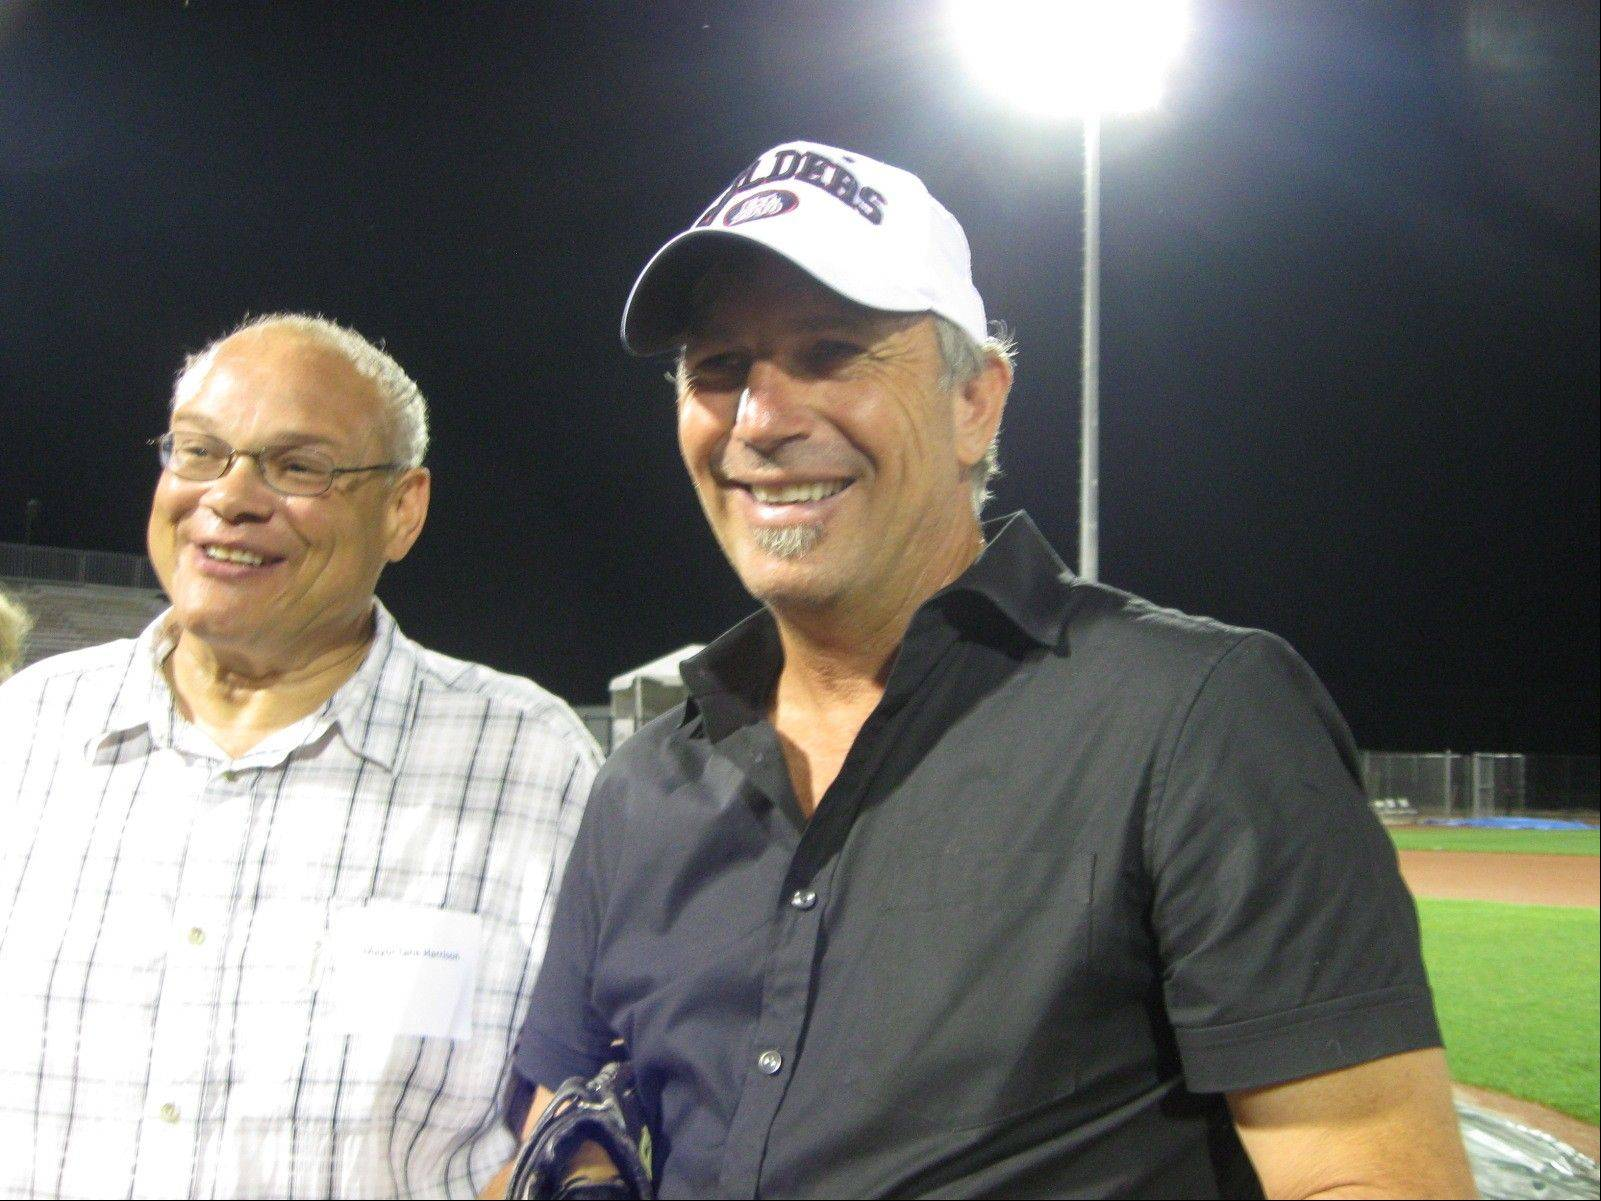 Actor Kevin Costner, right, co-owner of the Lake County Fielders, joined Zion Mayor Lane Harrison on the team's off day last year at the city's temporary ballpark.